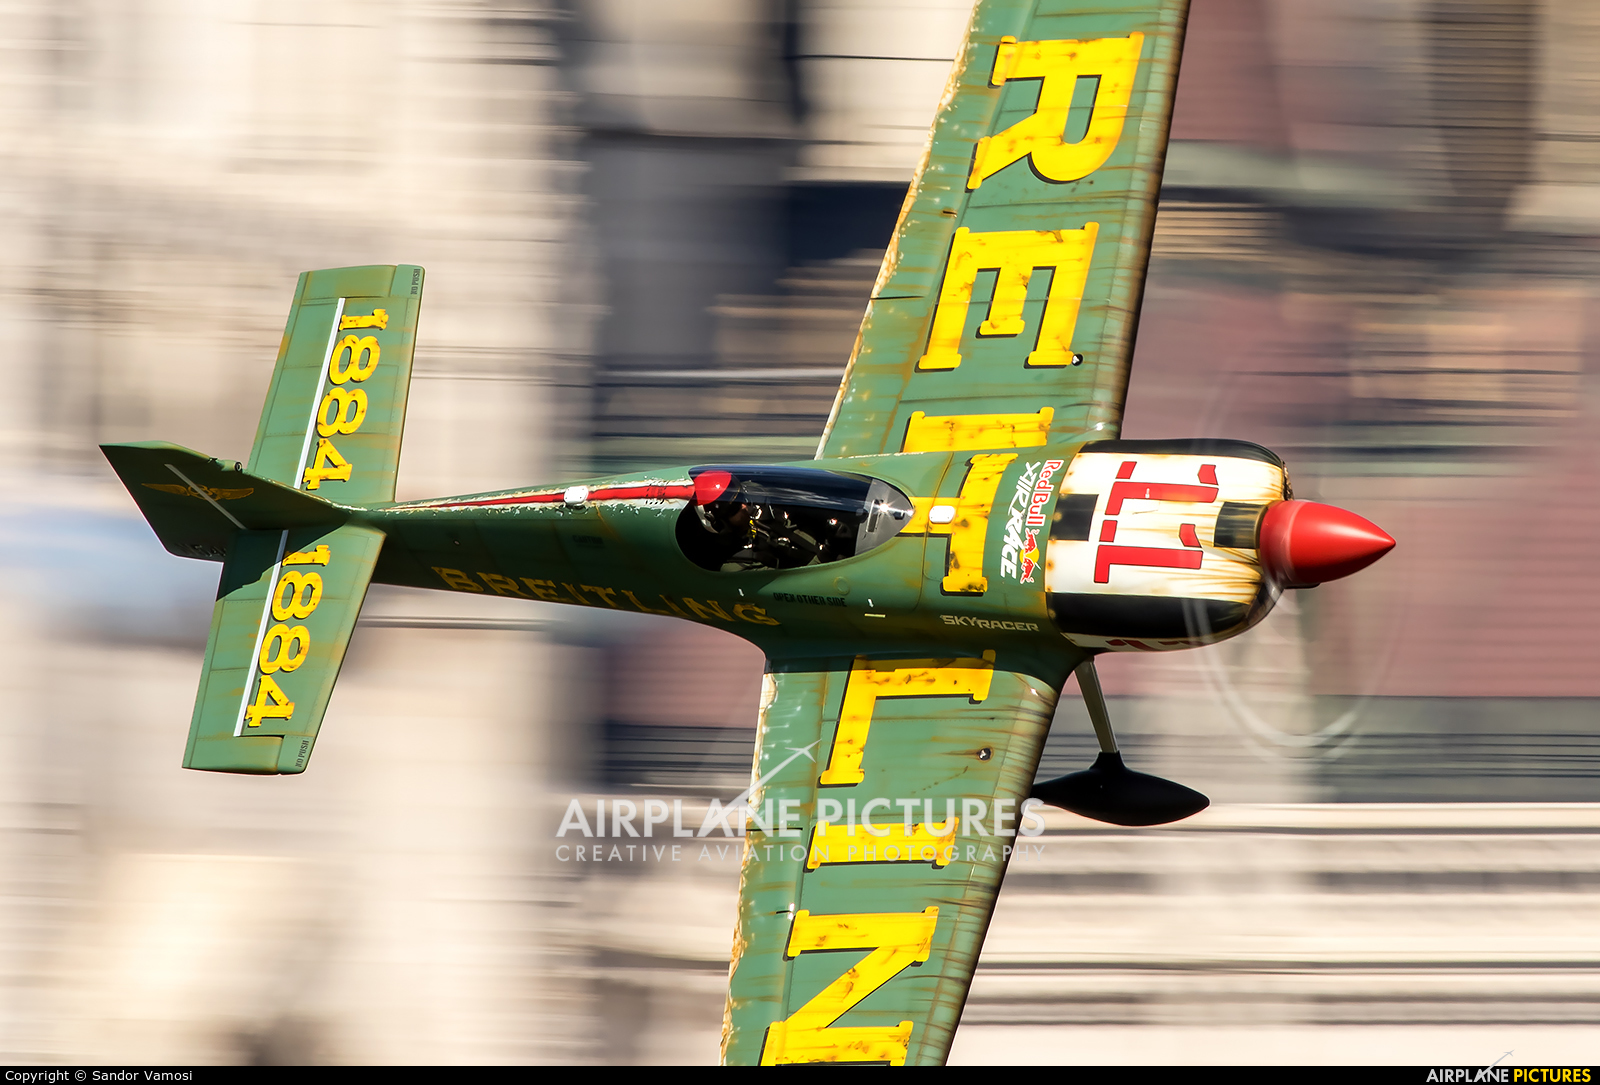 Breitling Devils N540XS aircraft at Off Airport - Hungary